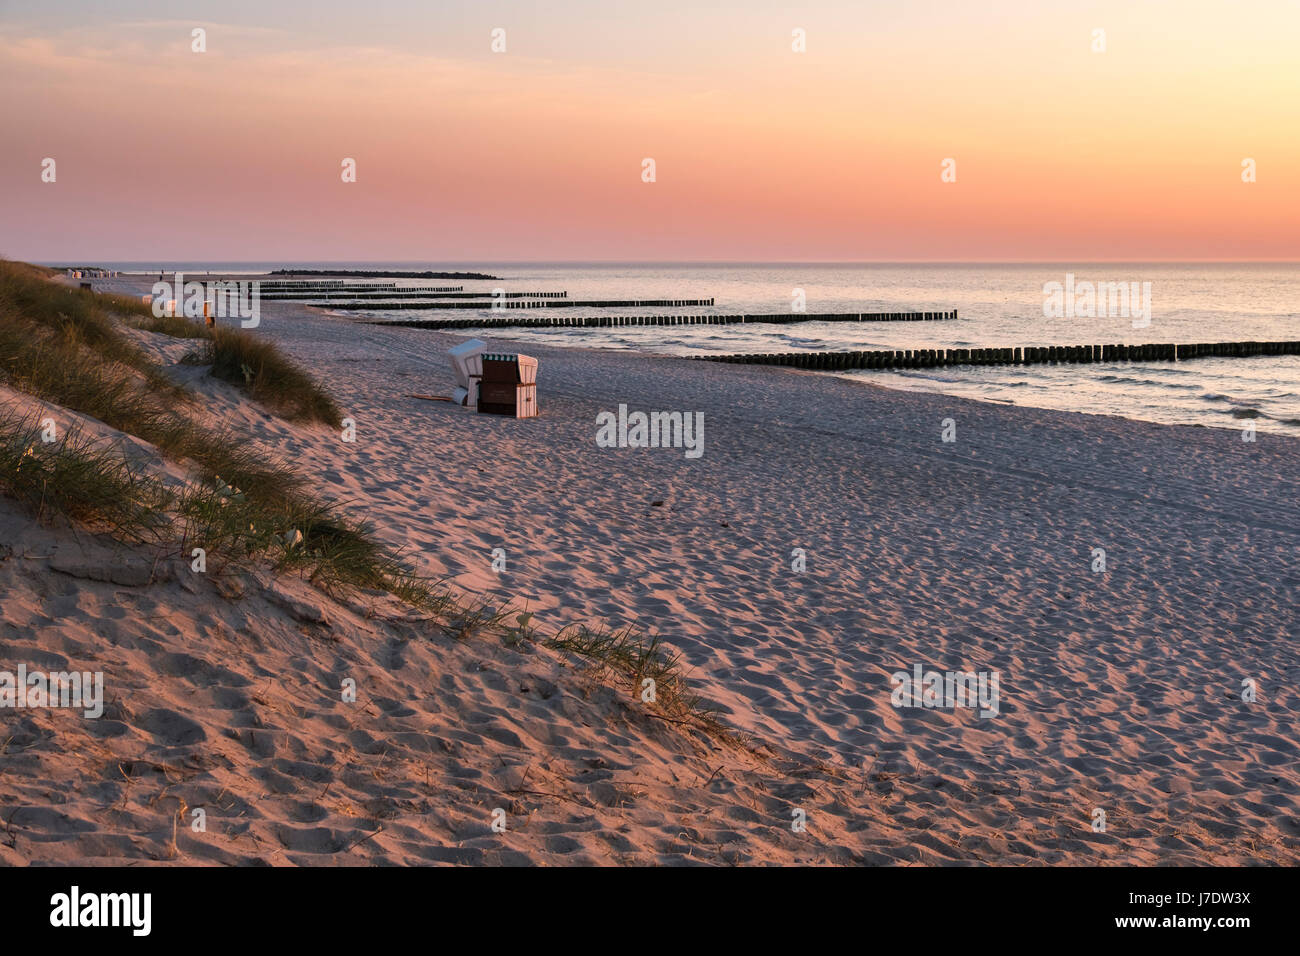 Beach with beach chairs and sea groynes at Ahrenshoop, Mecklenburg-Vorpommern, Germany - Stock Image